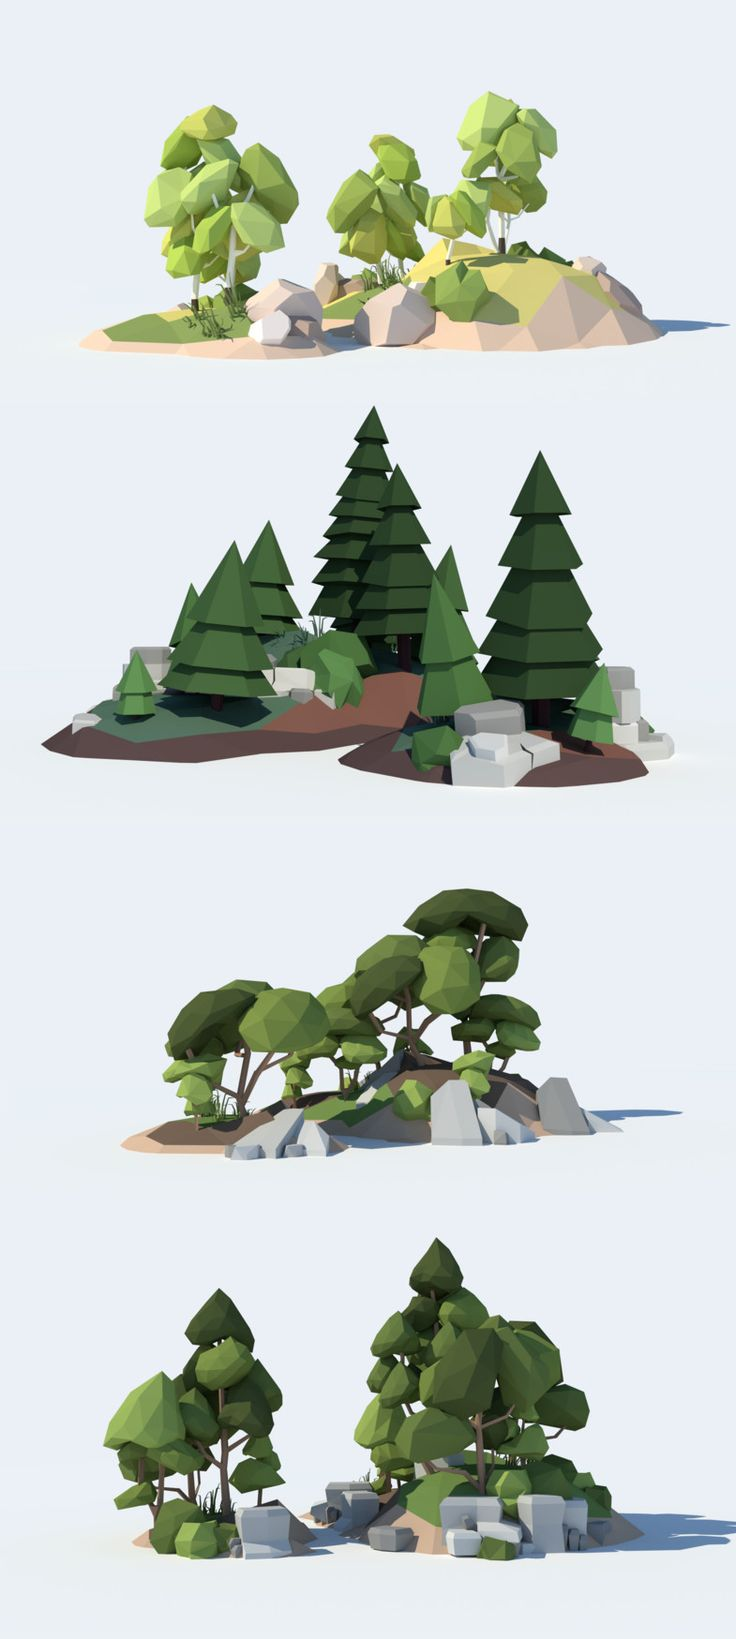 Low Poly Tree Pack. Unity 3D Game Asset. Contains 38 stylized low poly trees as .dae (Collada) mesh files and ready-to-use prefabs.Tree types: – simple spruces – wrinkled spruces – round broad-leaved trees – sharp broad-leaved trees – birchtrees – weeping willows – palmtrees – 6 special trees